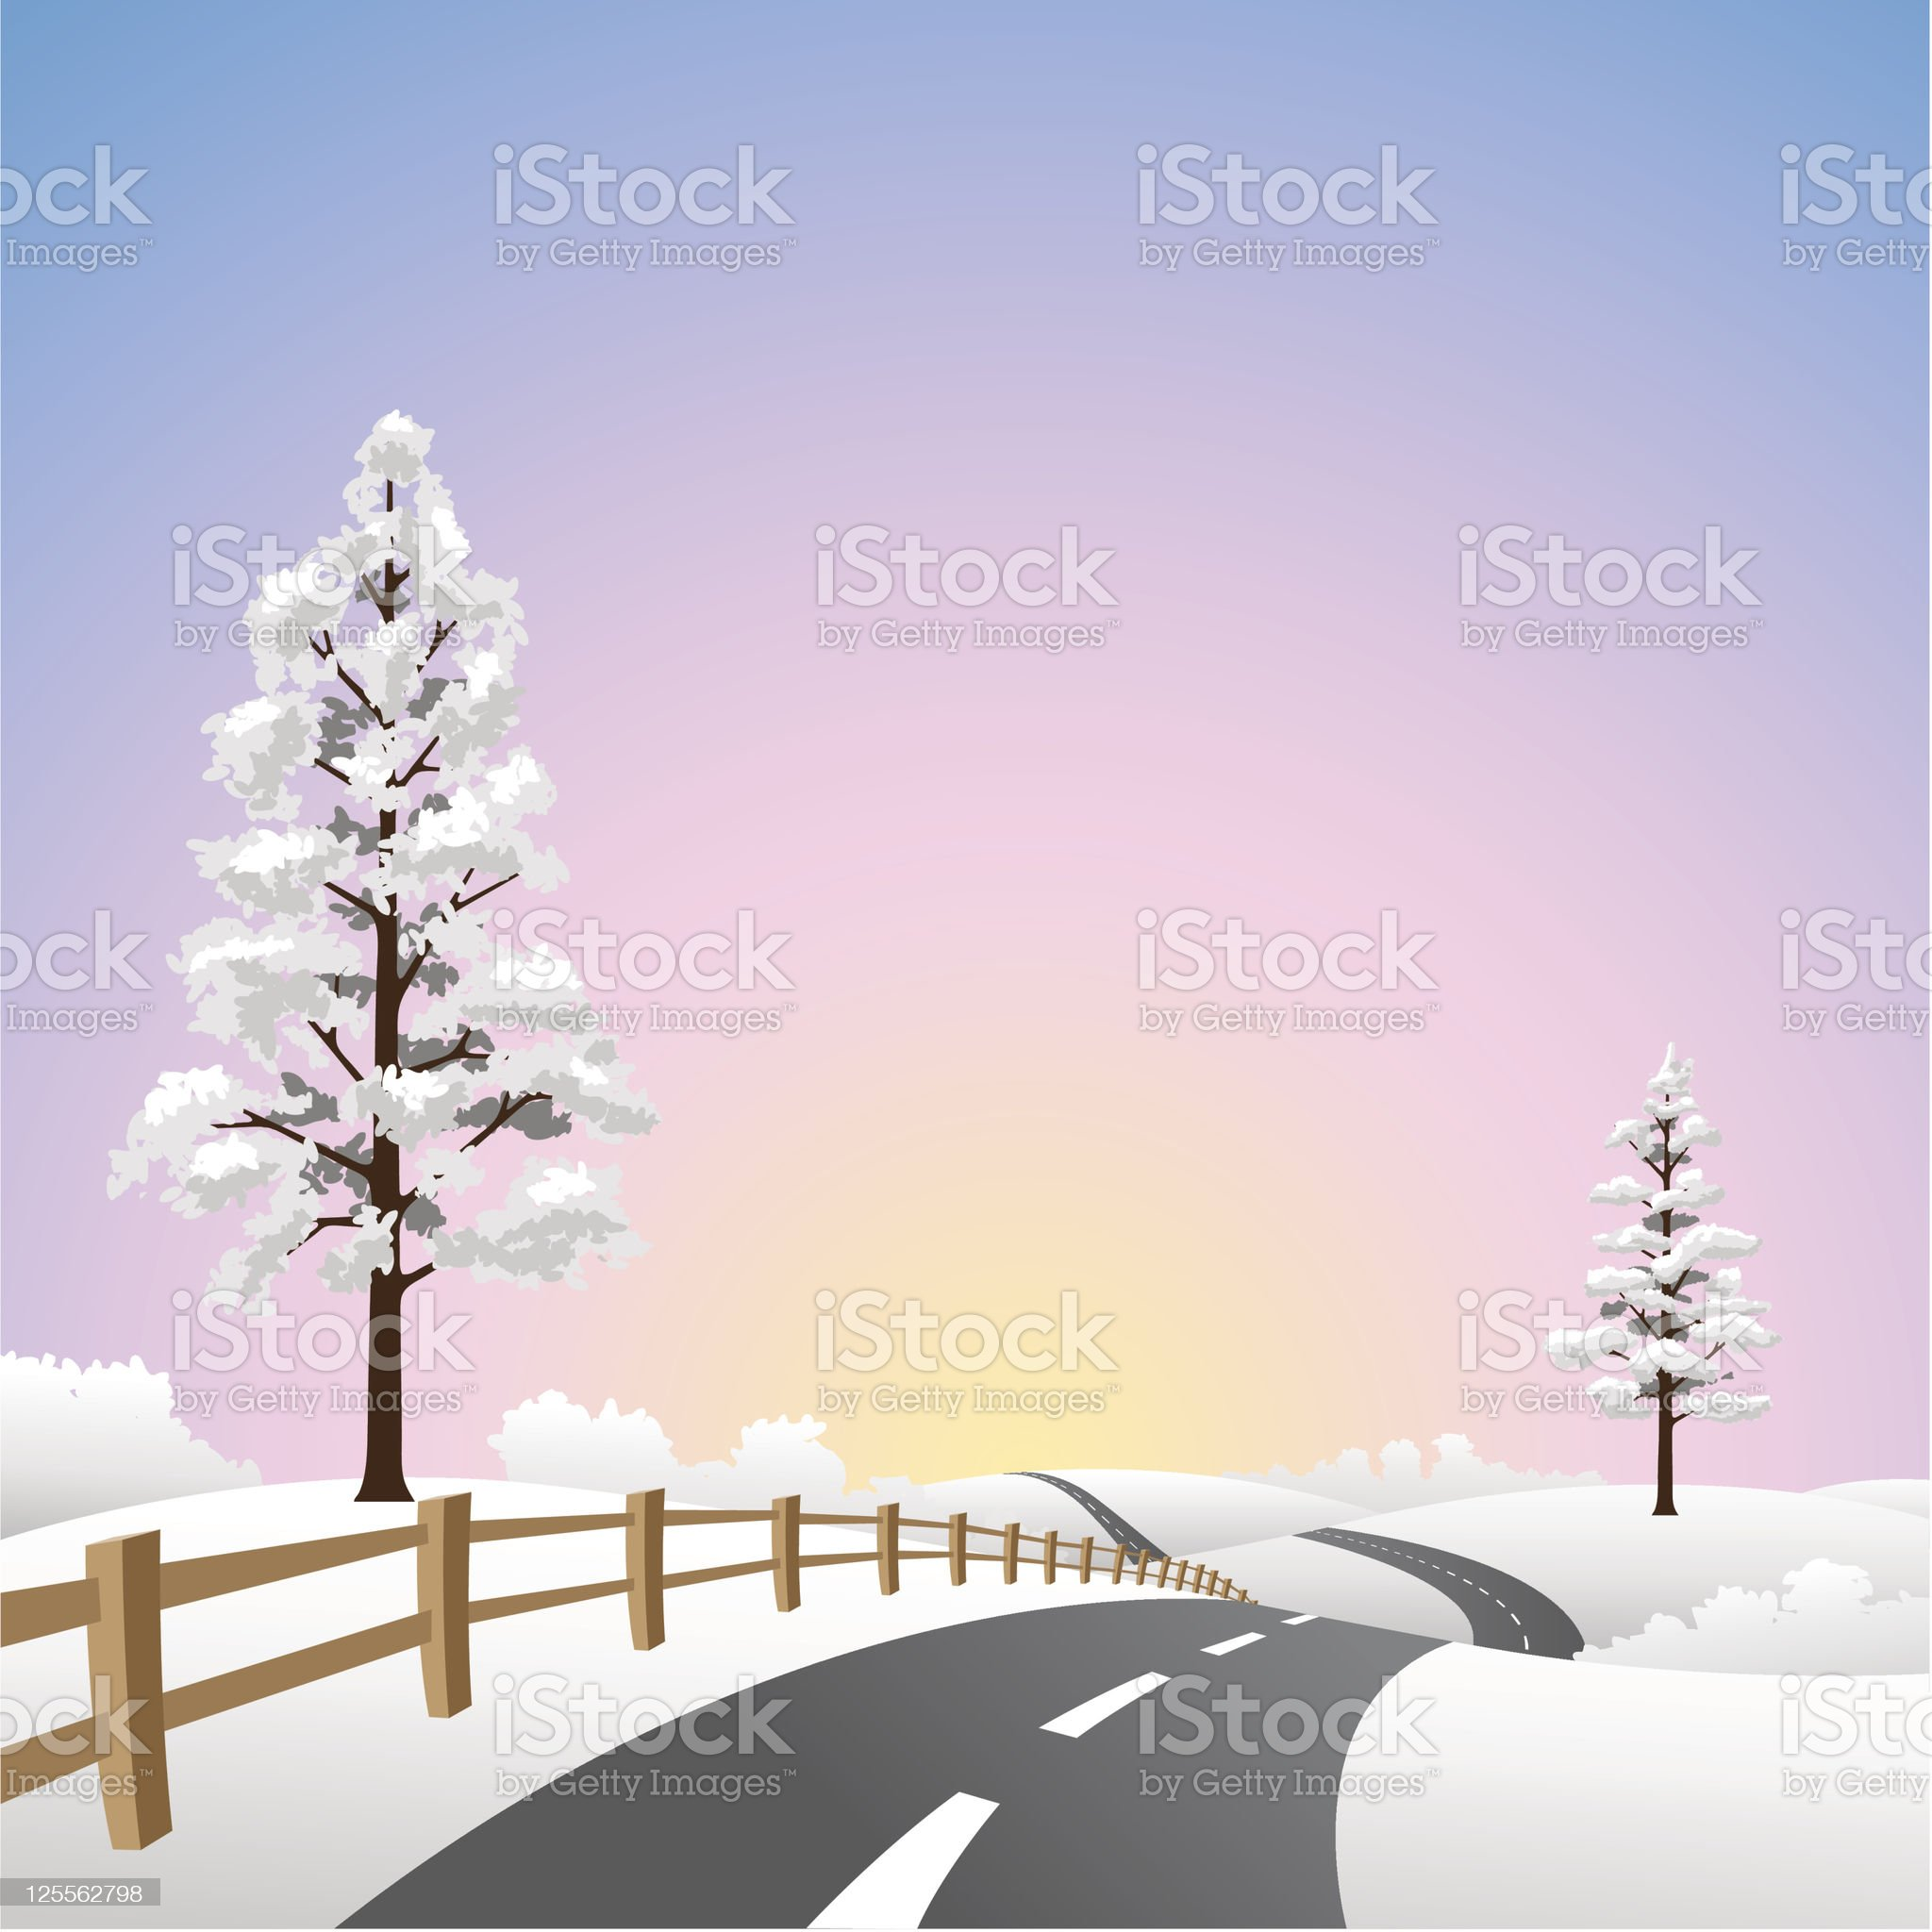 Snow Landscape royalty-free stock vector art